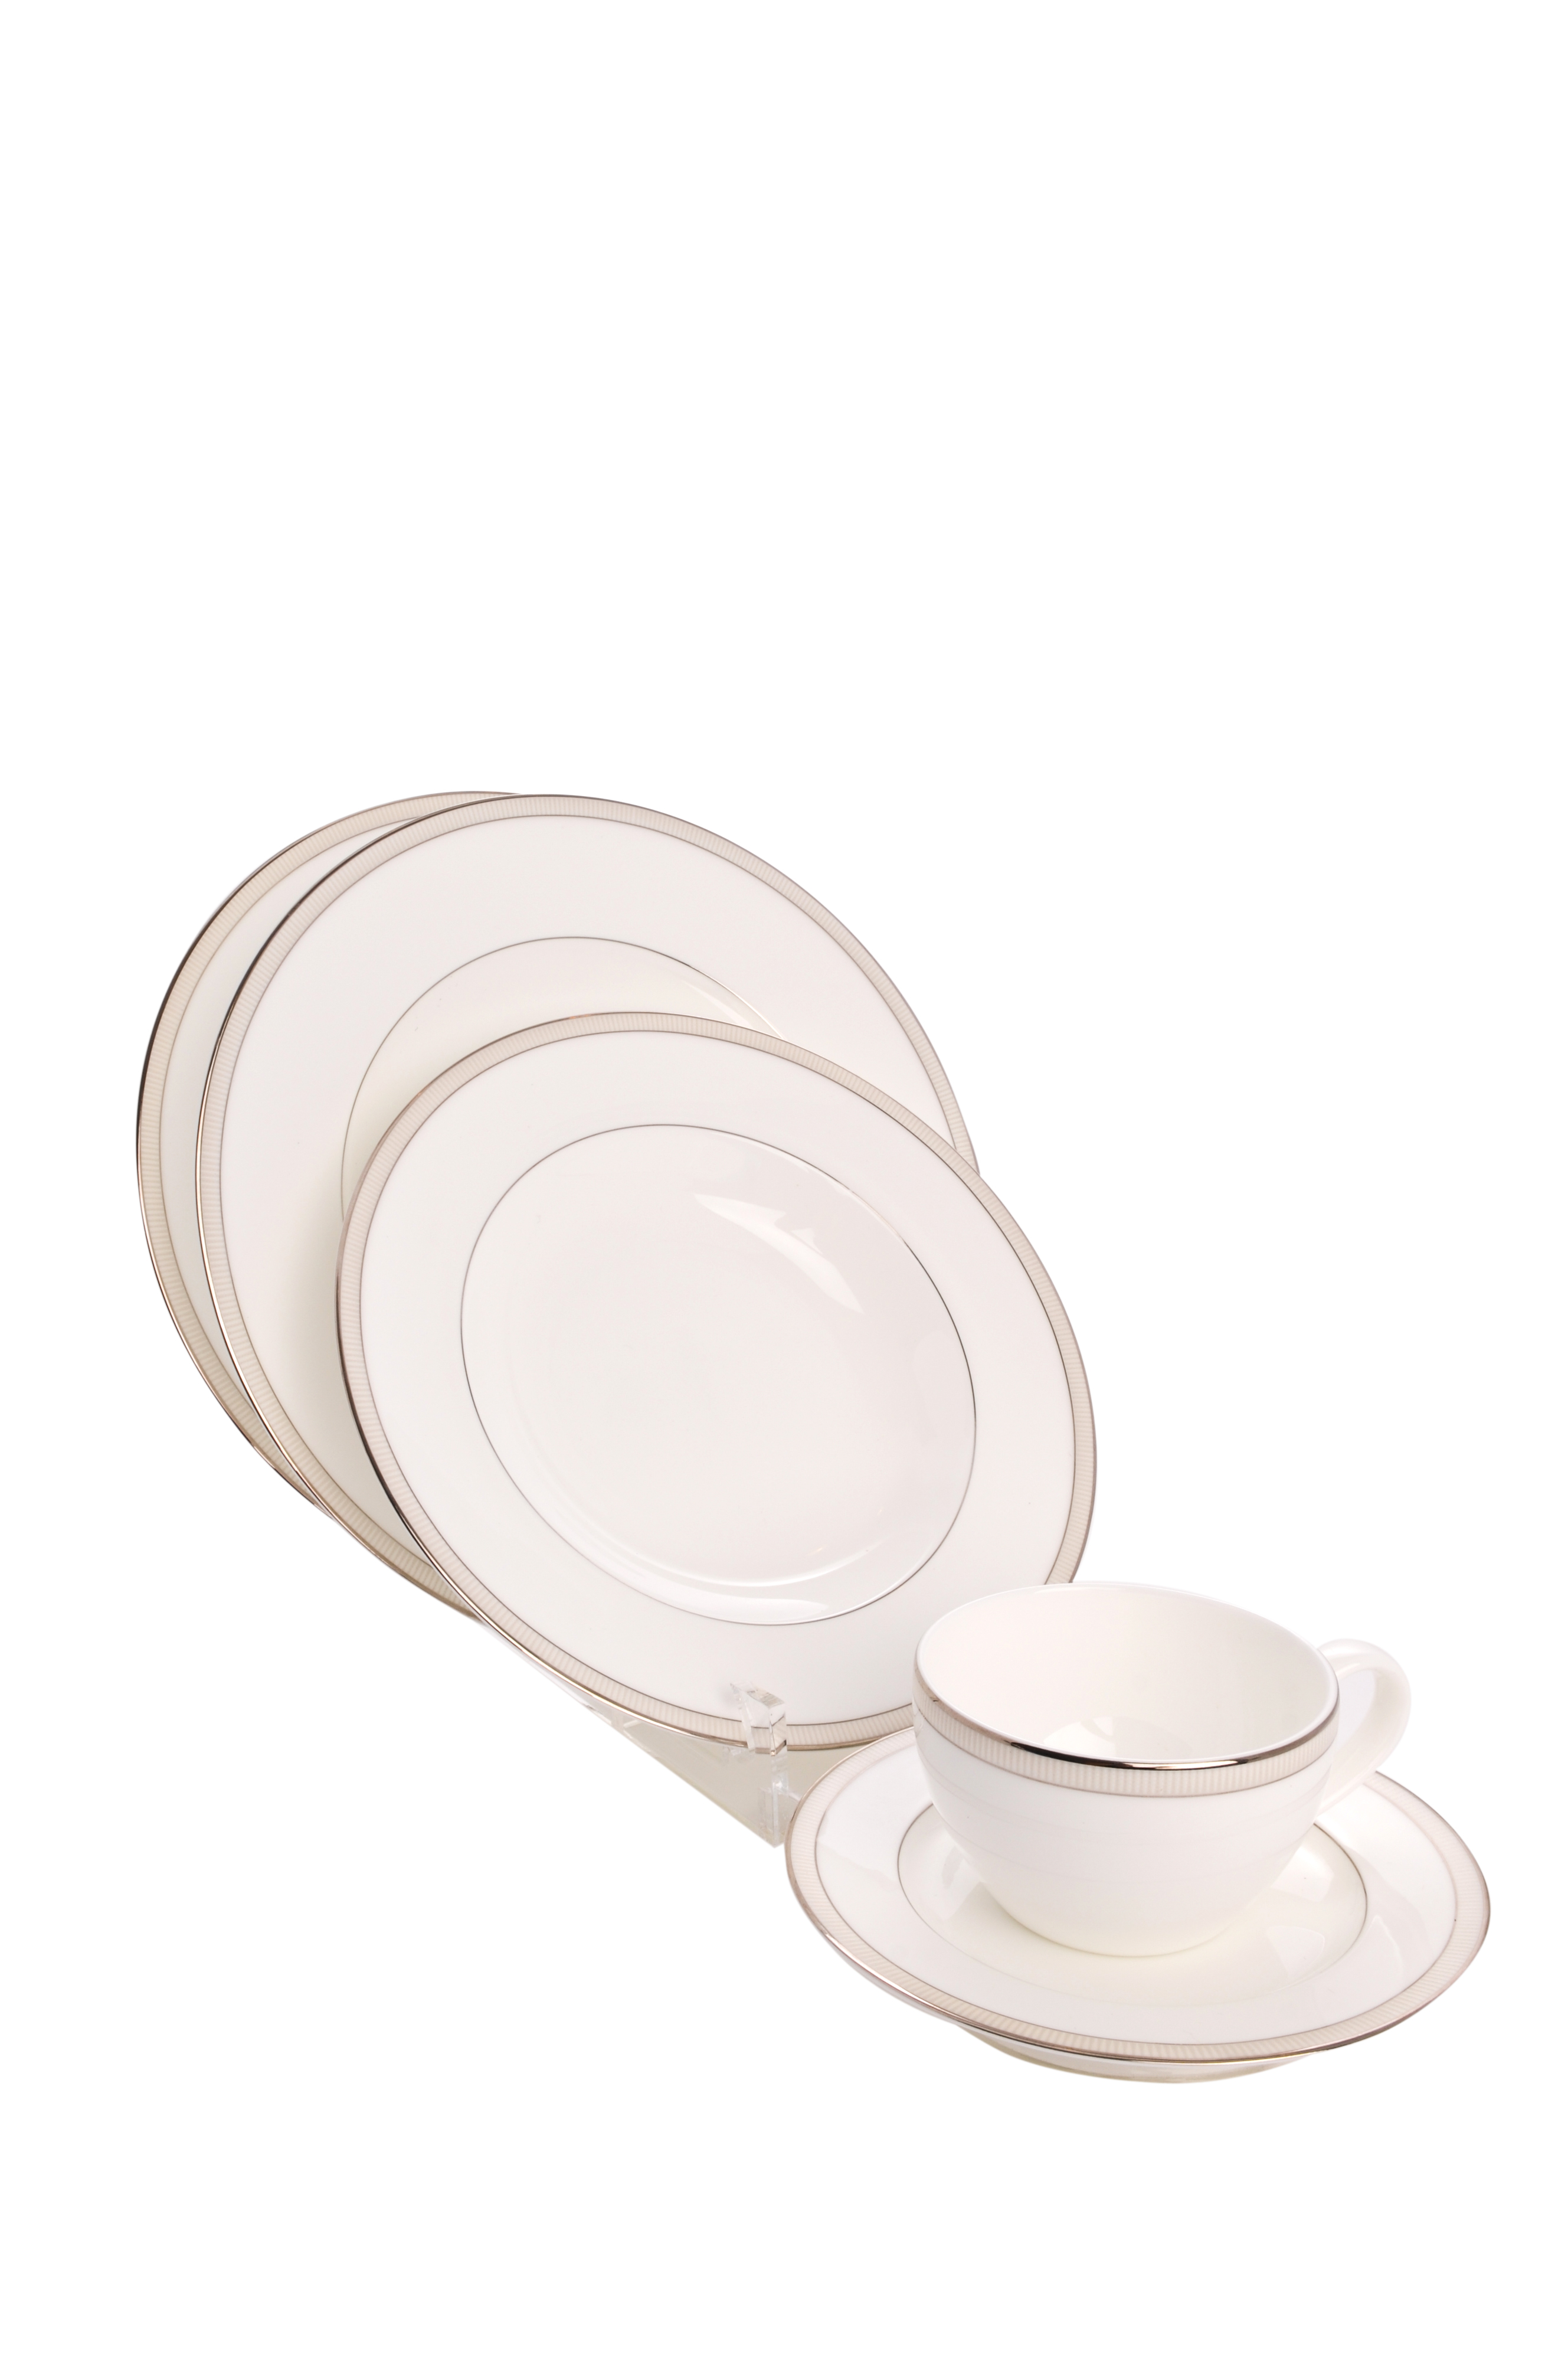 Clear Acrylic 5 Piece Dinnerware / China / Place Setting with a Bowl Display Stand (Item #769)  sc 1 st  THB Products LLC & Clear Acrylic 5 Piece Dinnerware / China / Place Setting with a Bowl ...